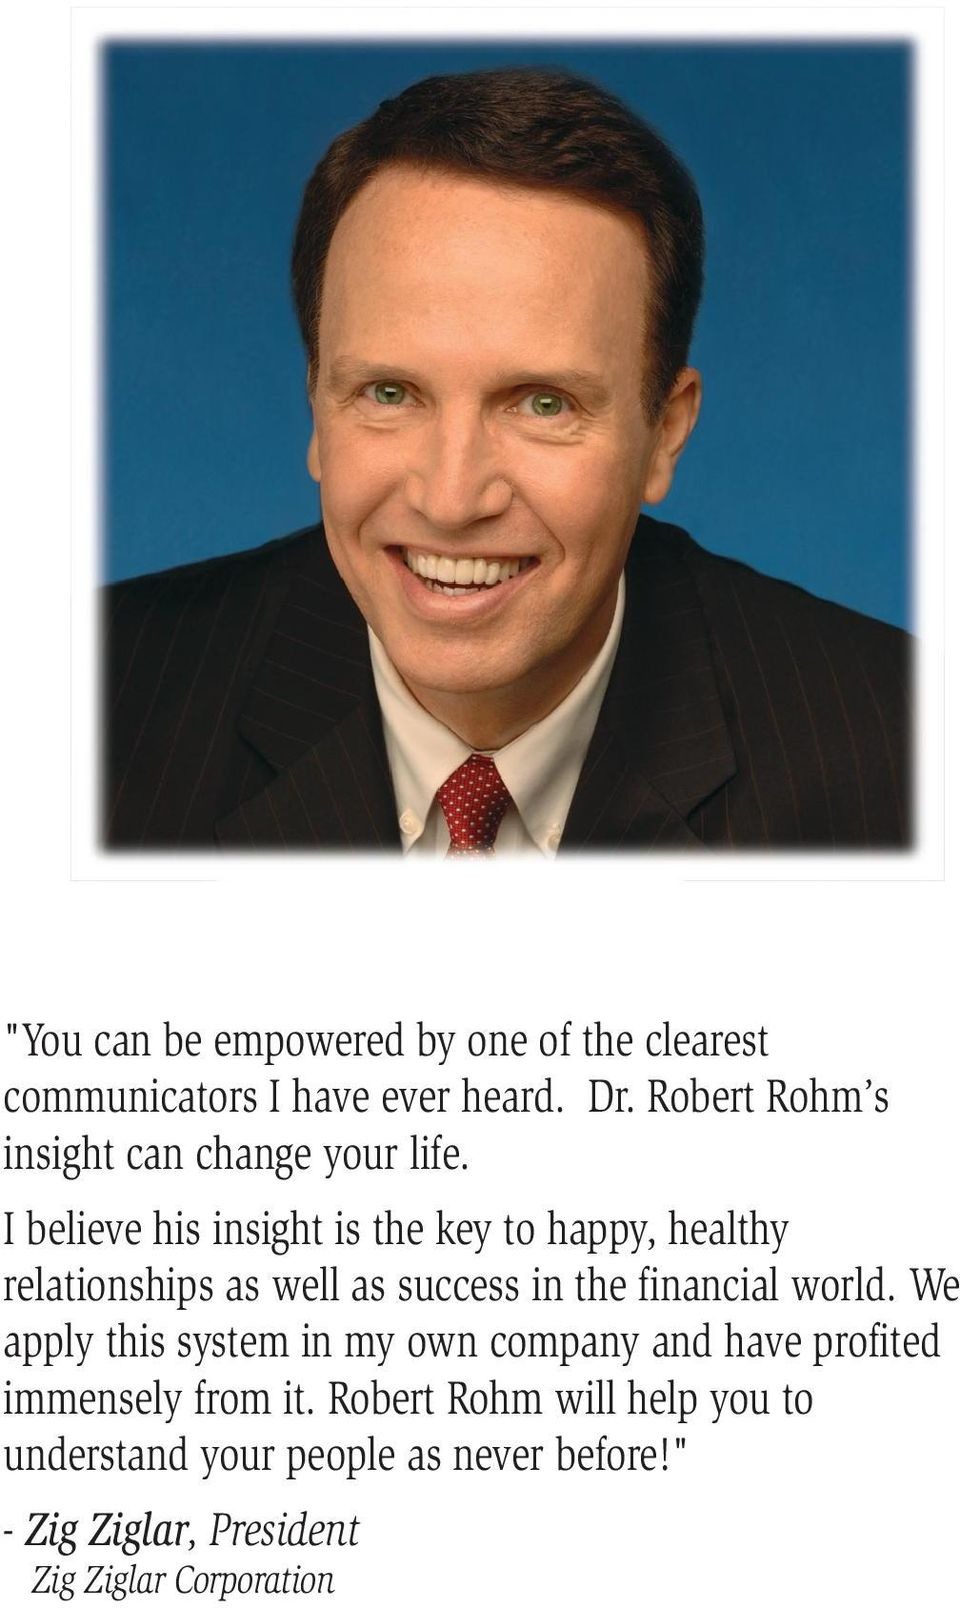 I believe his insight is the key to happy, healthy relationships as well as success in the financial world.